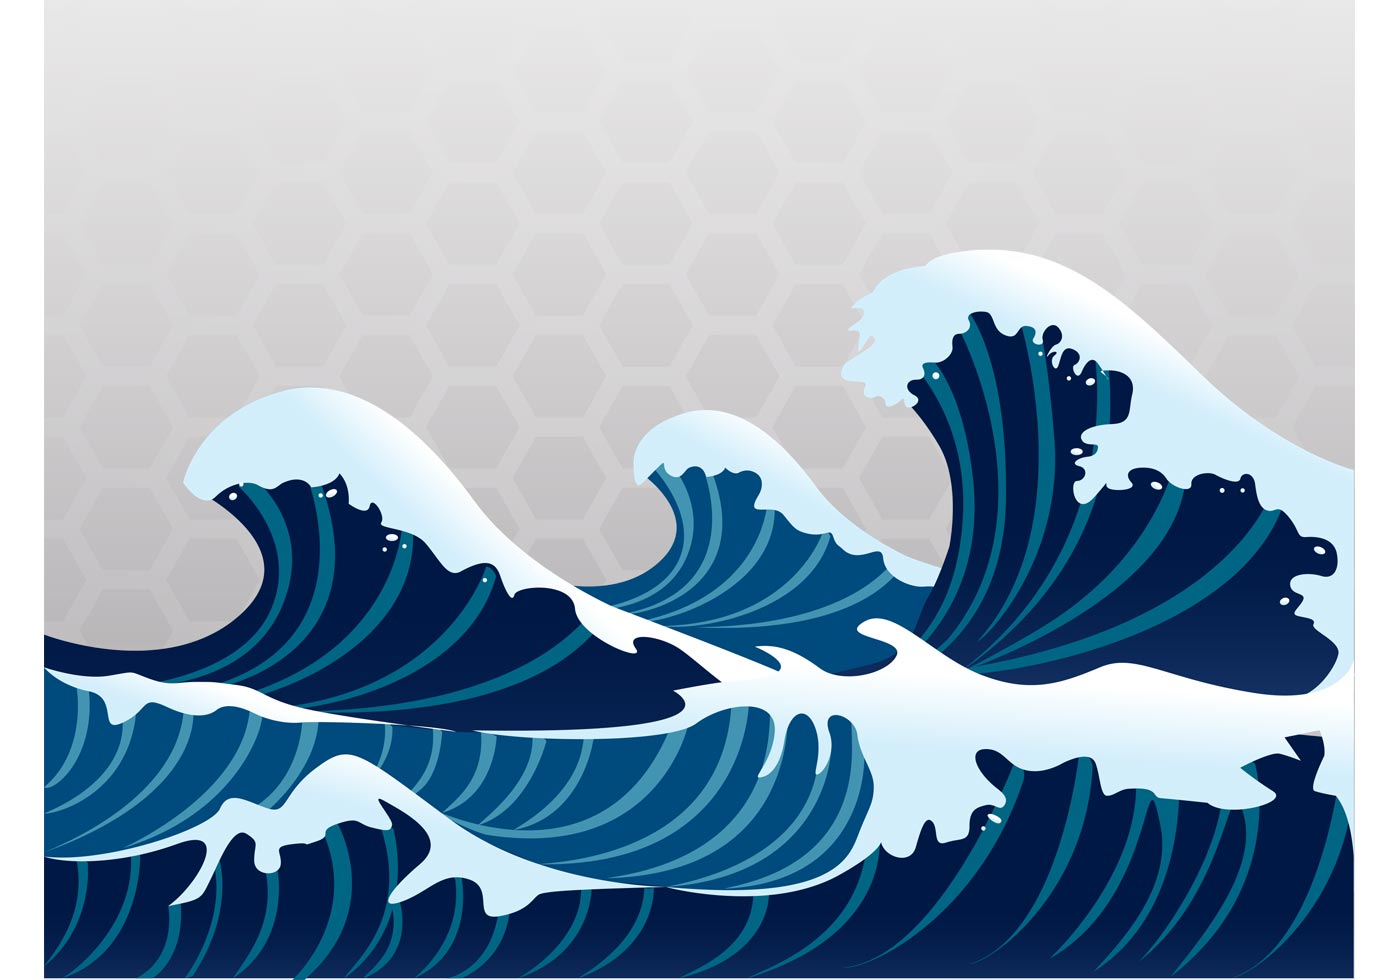 1400x980 Waves Vector 1 An Images Hub